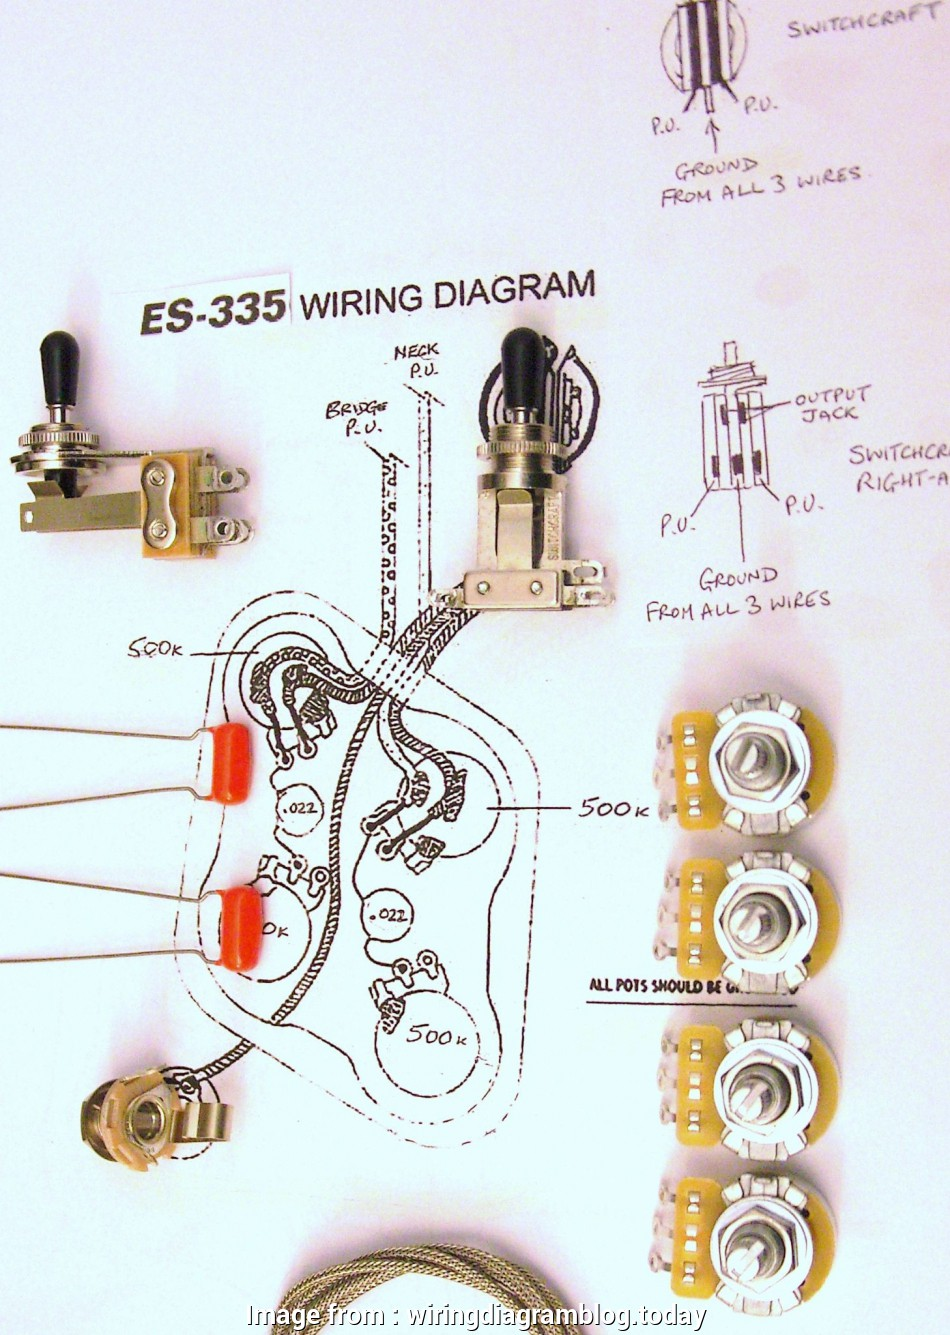 hight resolution of switchcraft 3 way toggle switch wiring diagram 335 wiring diagram chromatex rh chromatex me 2